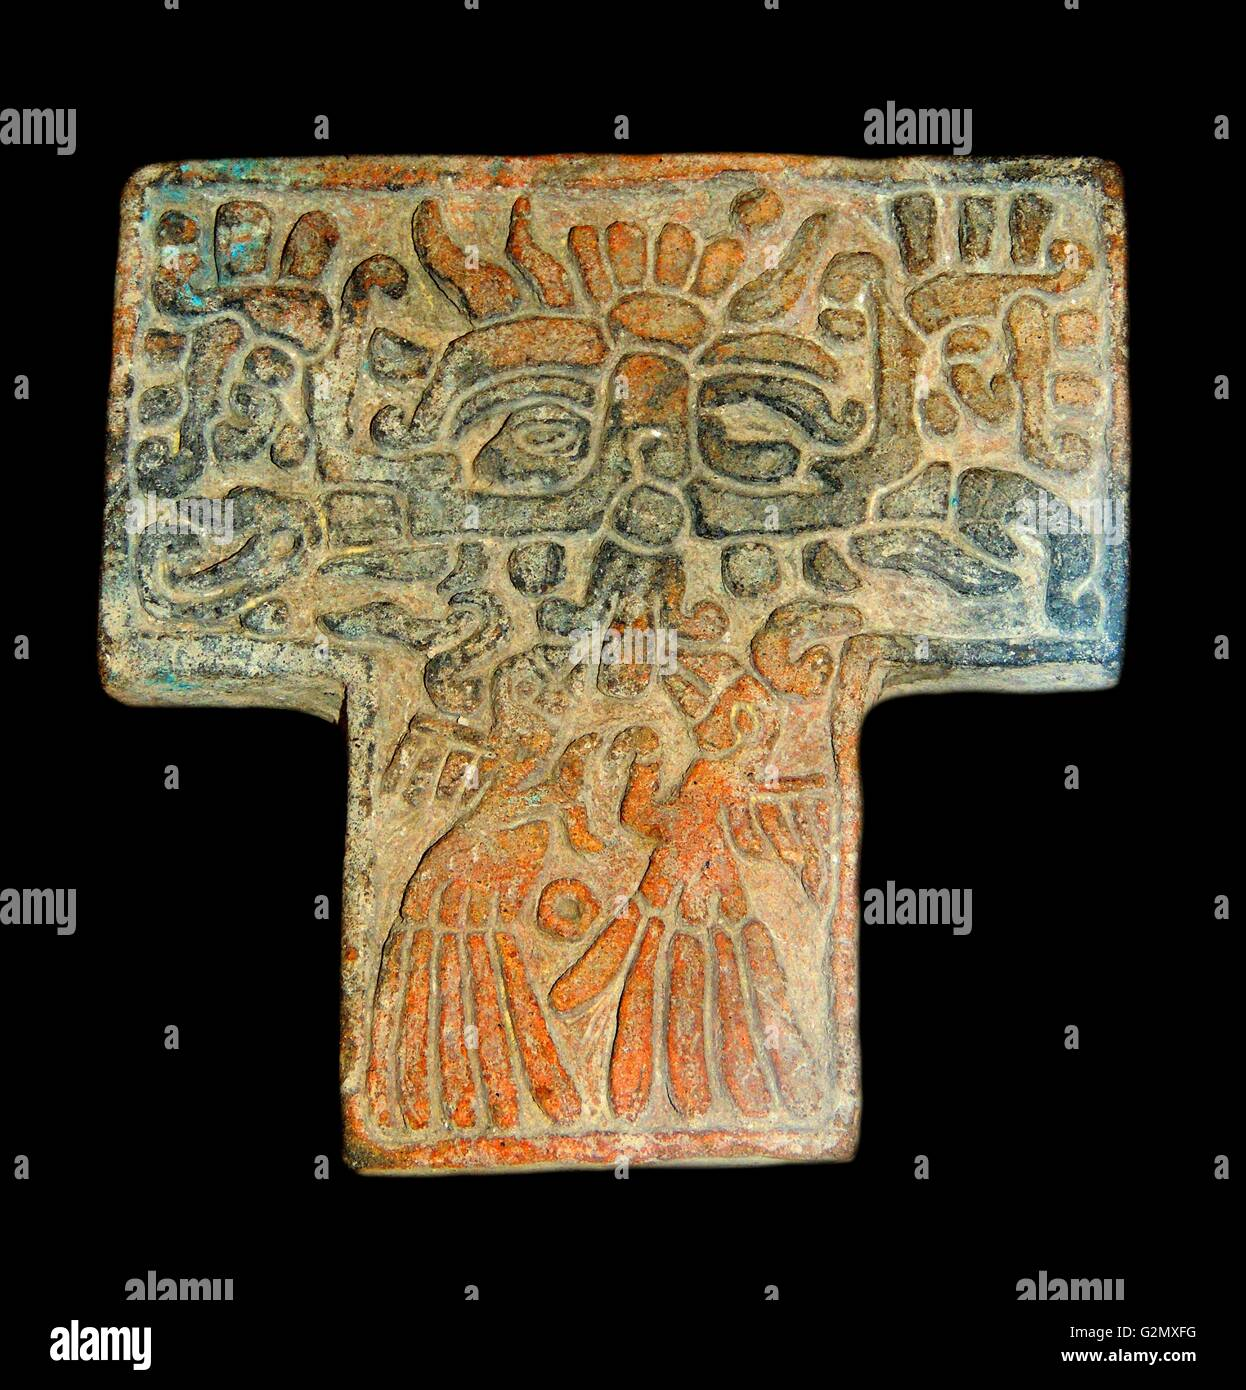 Pottery stamps used to imprint designs on textiles 900 A.D. - Stock Image